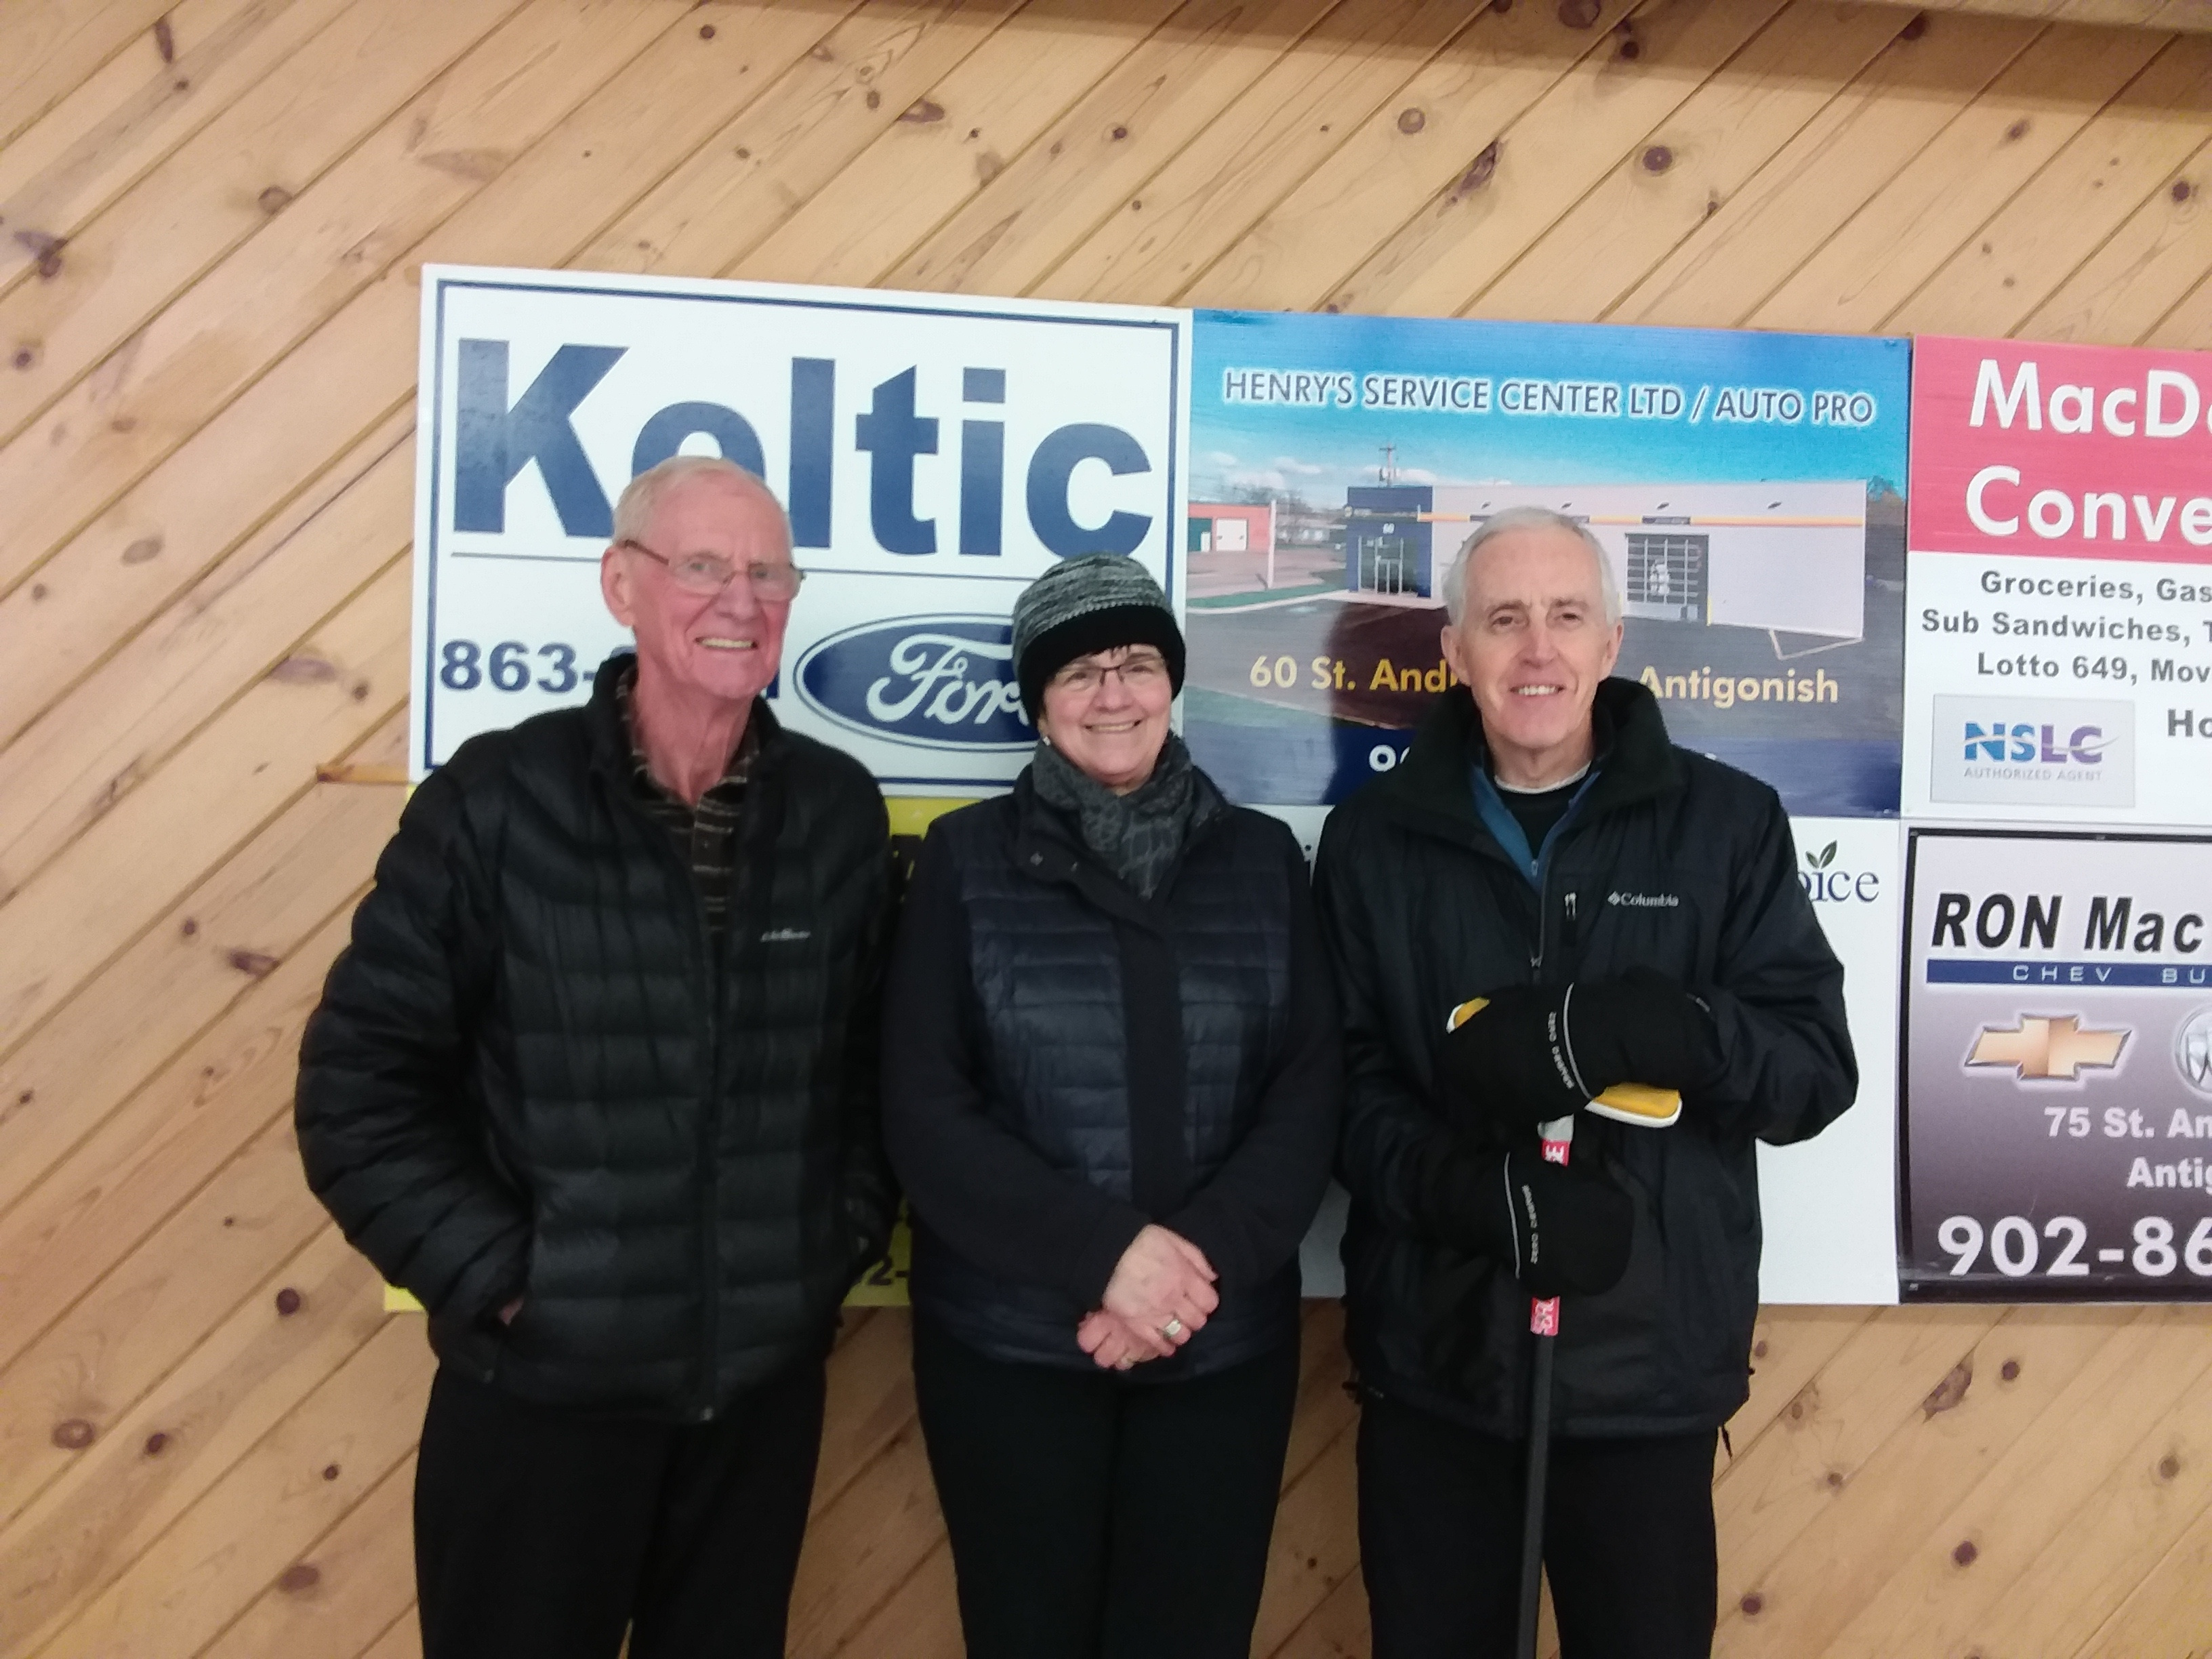 Tuesday Seniors Curling Second Place Winners: Lawrence Long, Mina Long, Duncan Carson, missing from photo Paulette Tate